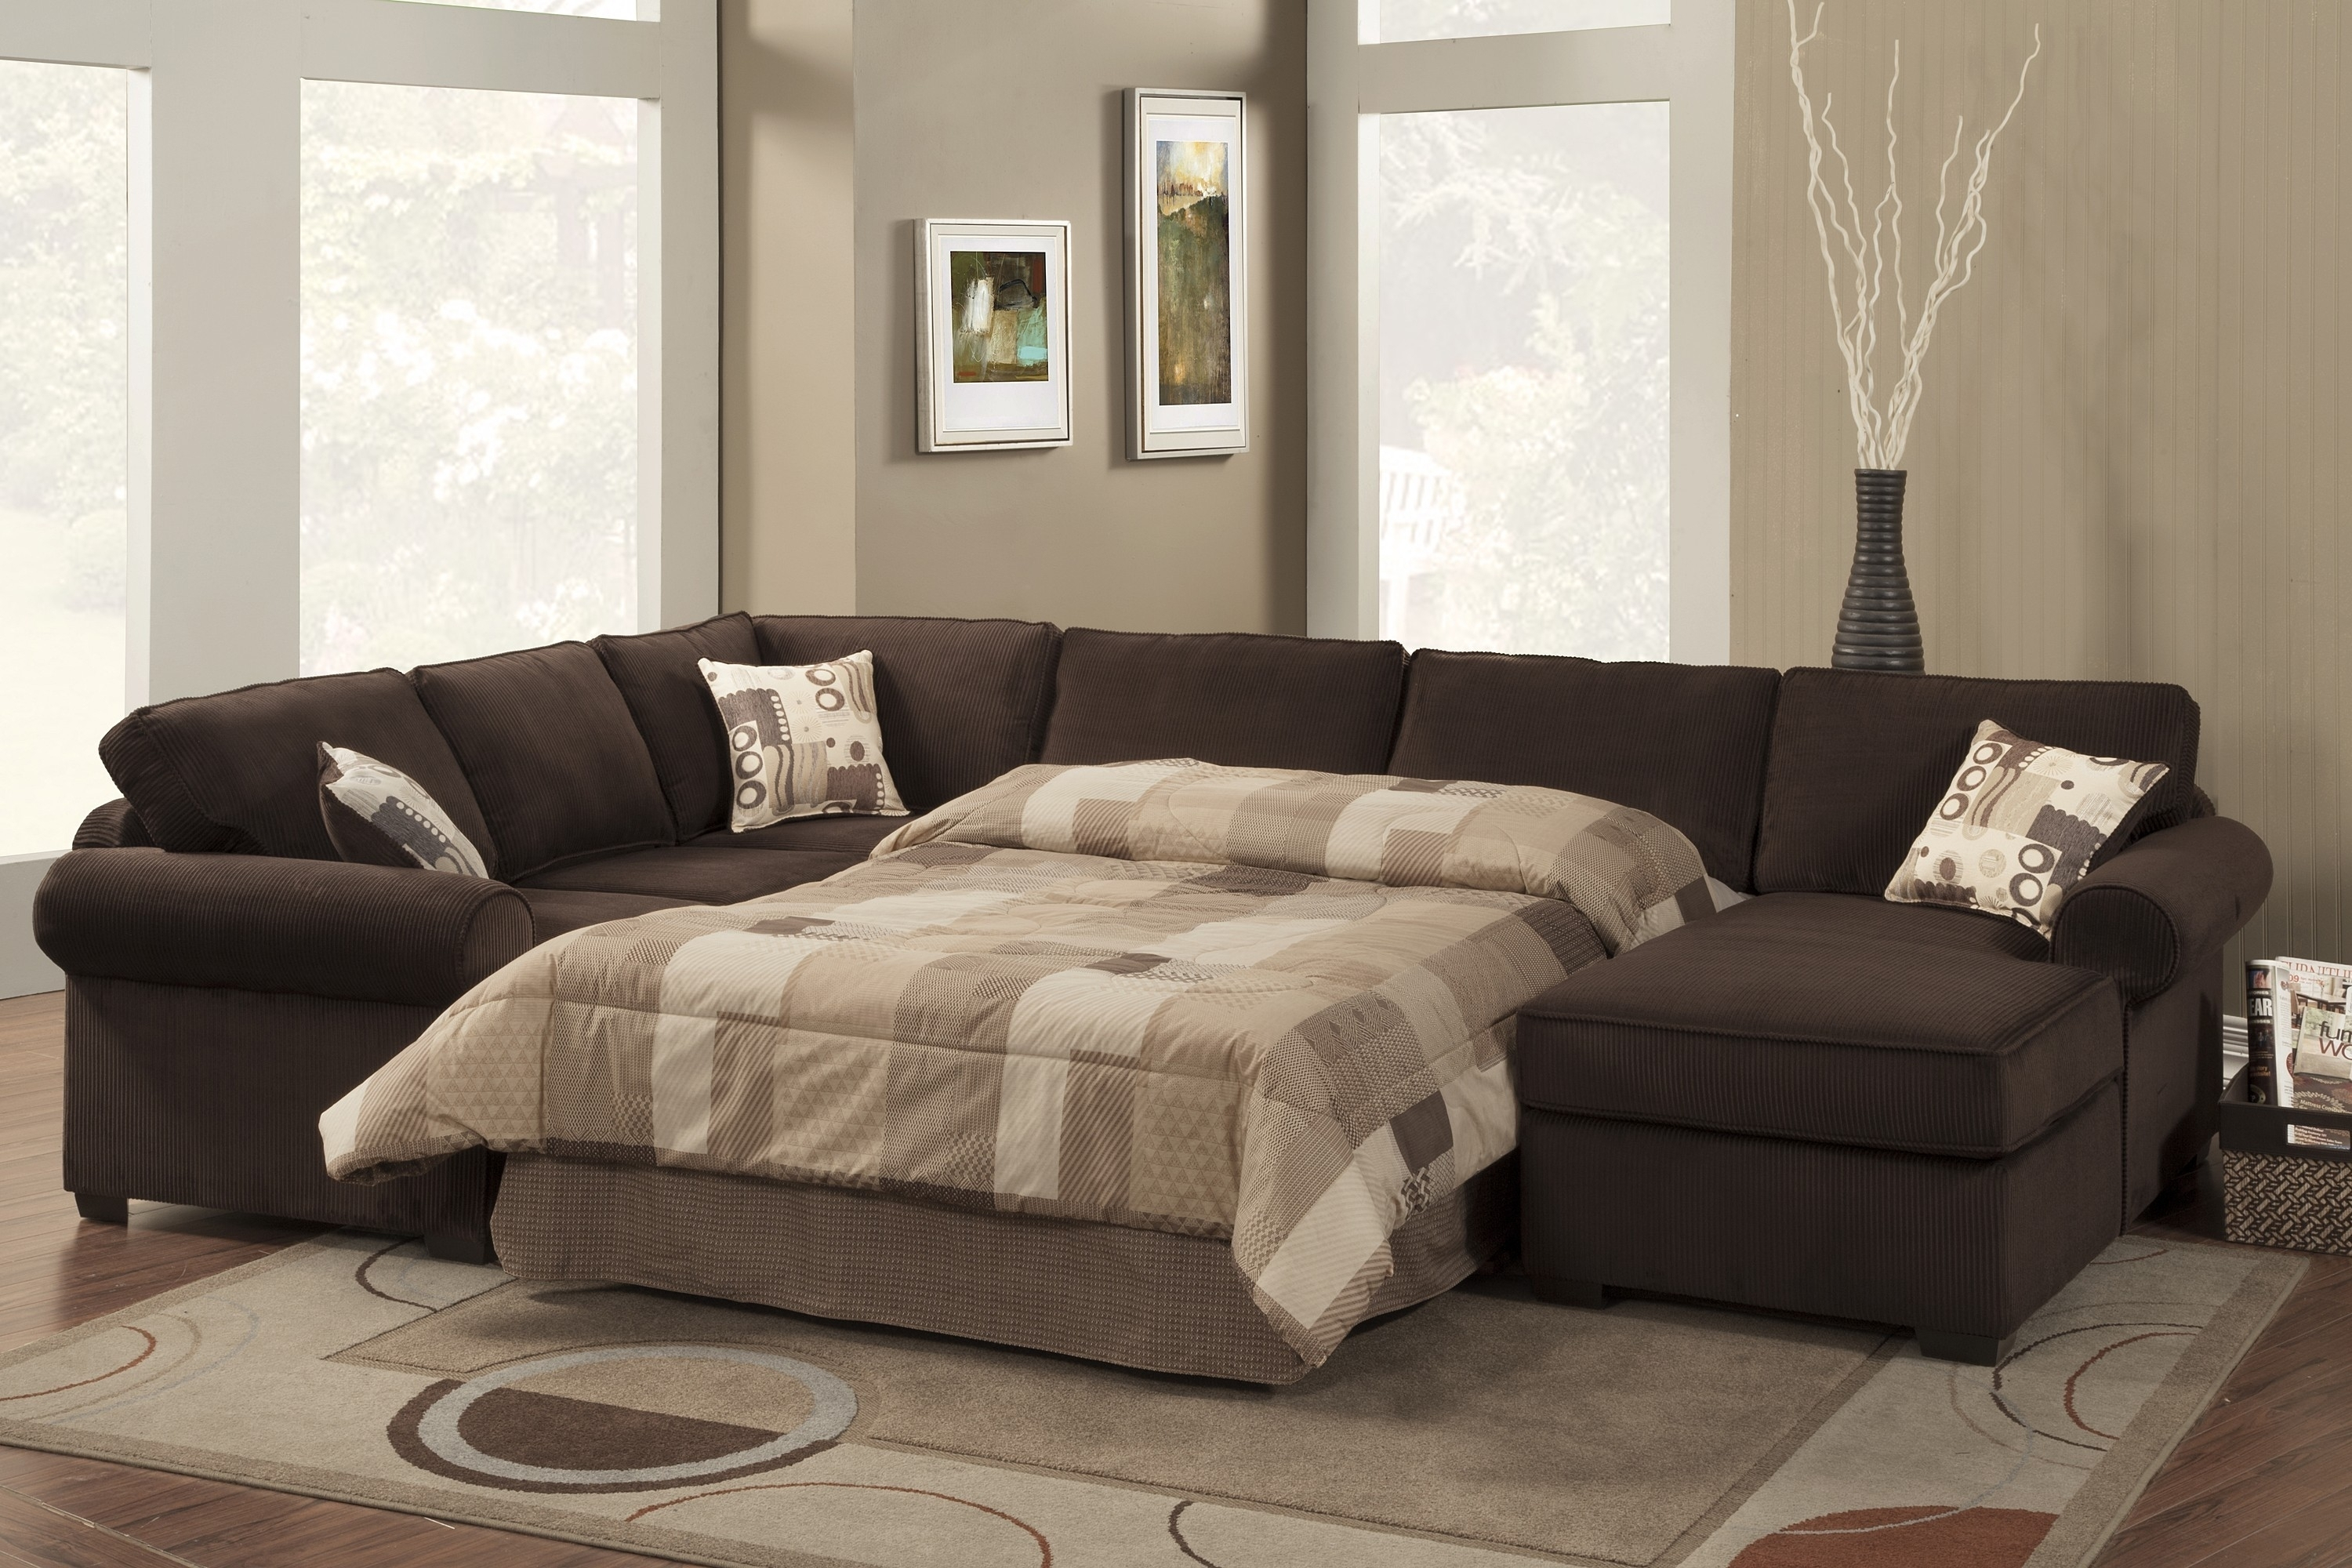 Extraordinary Sleeper Sofa Sectional Alluring Home Design In Sectional Sofas With Queen Size Sleeper (Image 1 of 10)